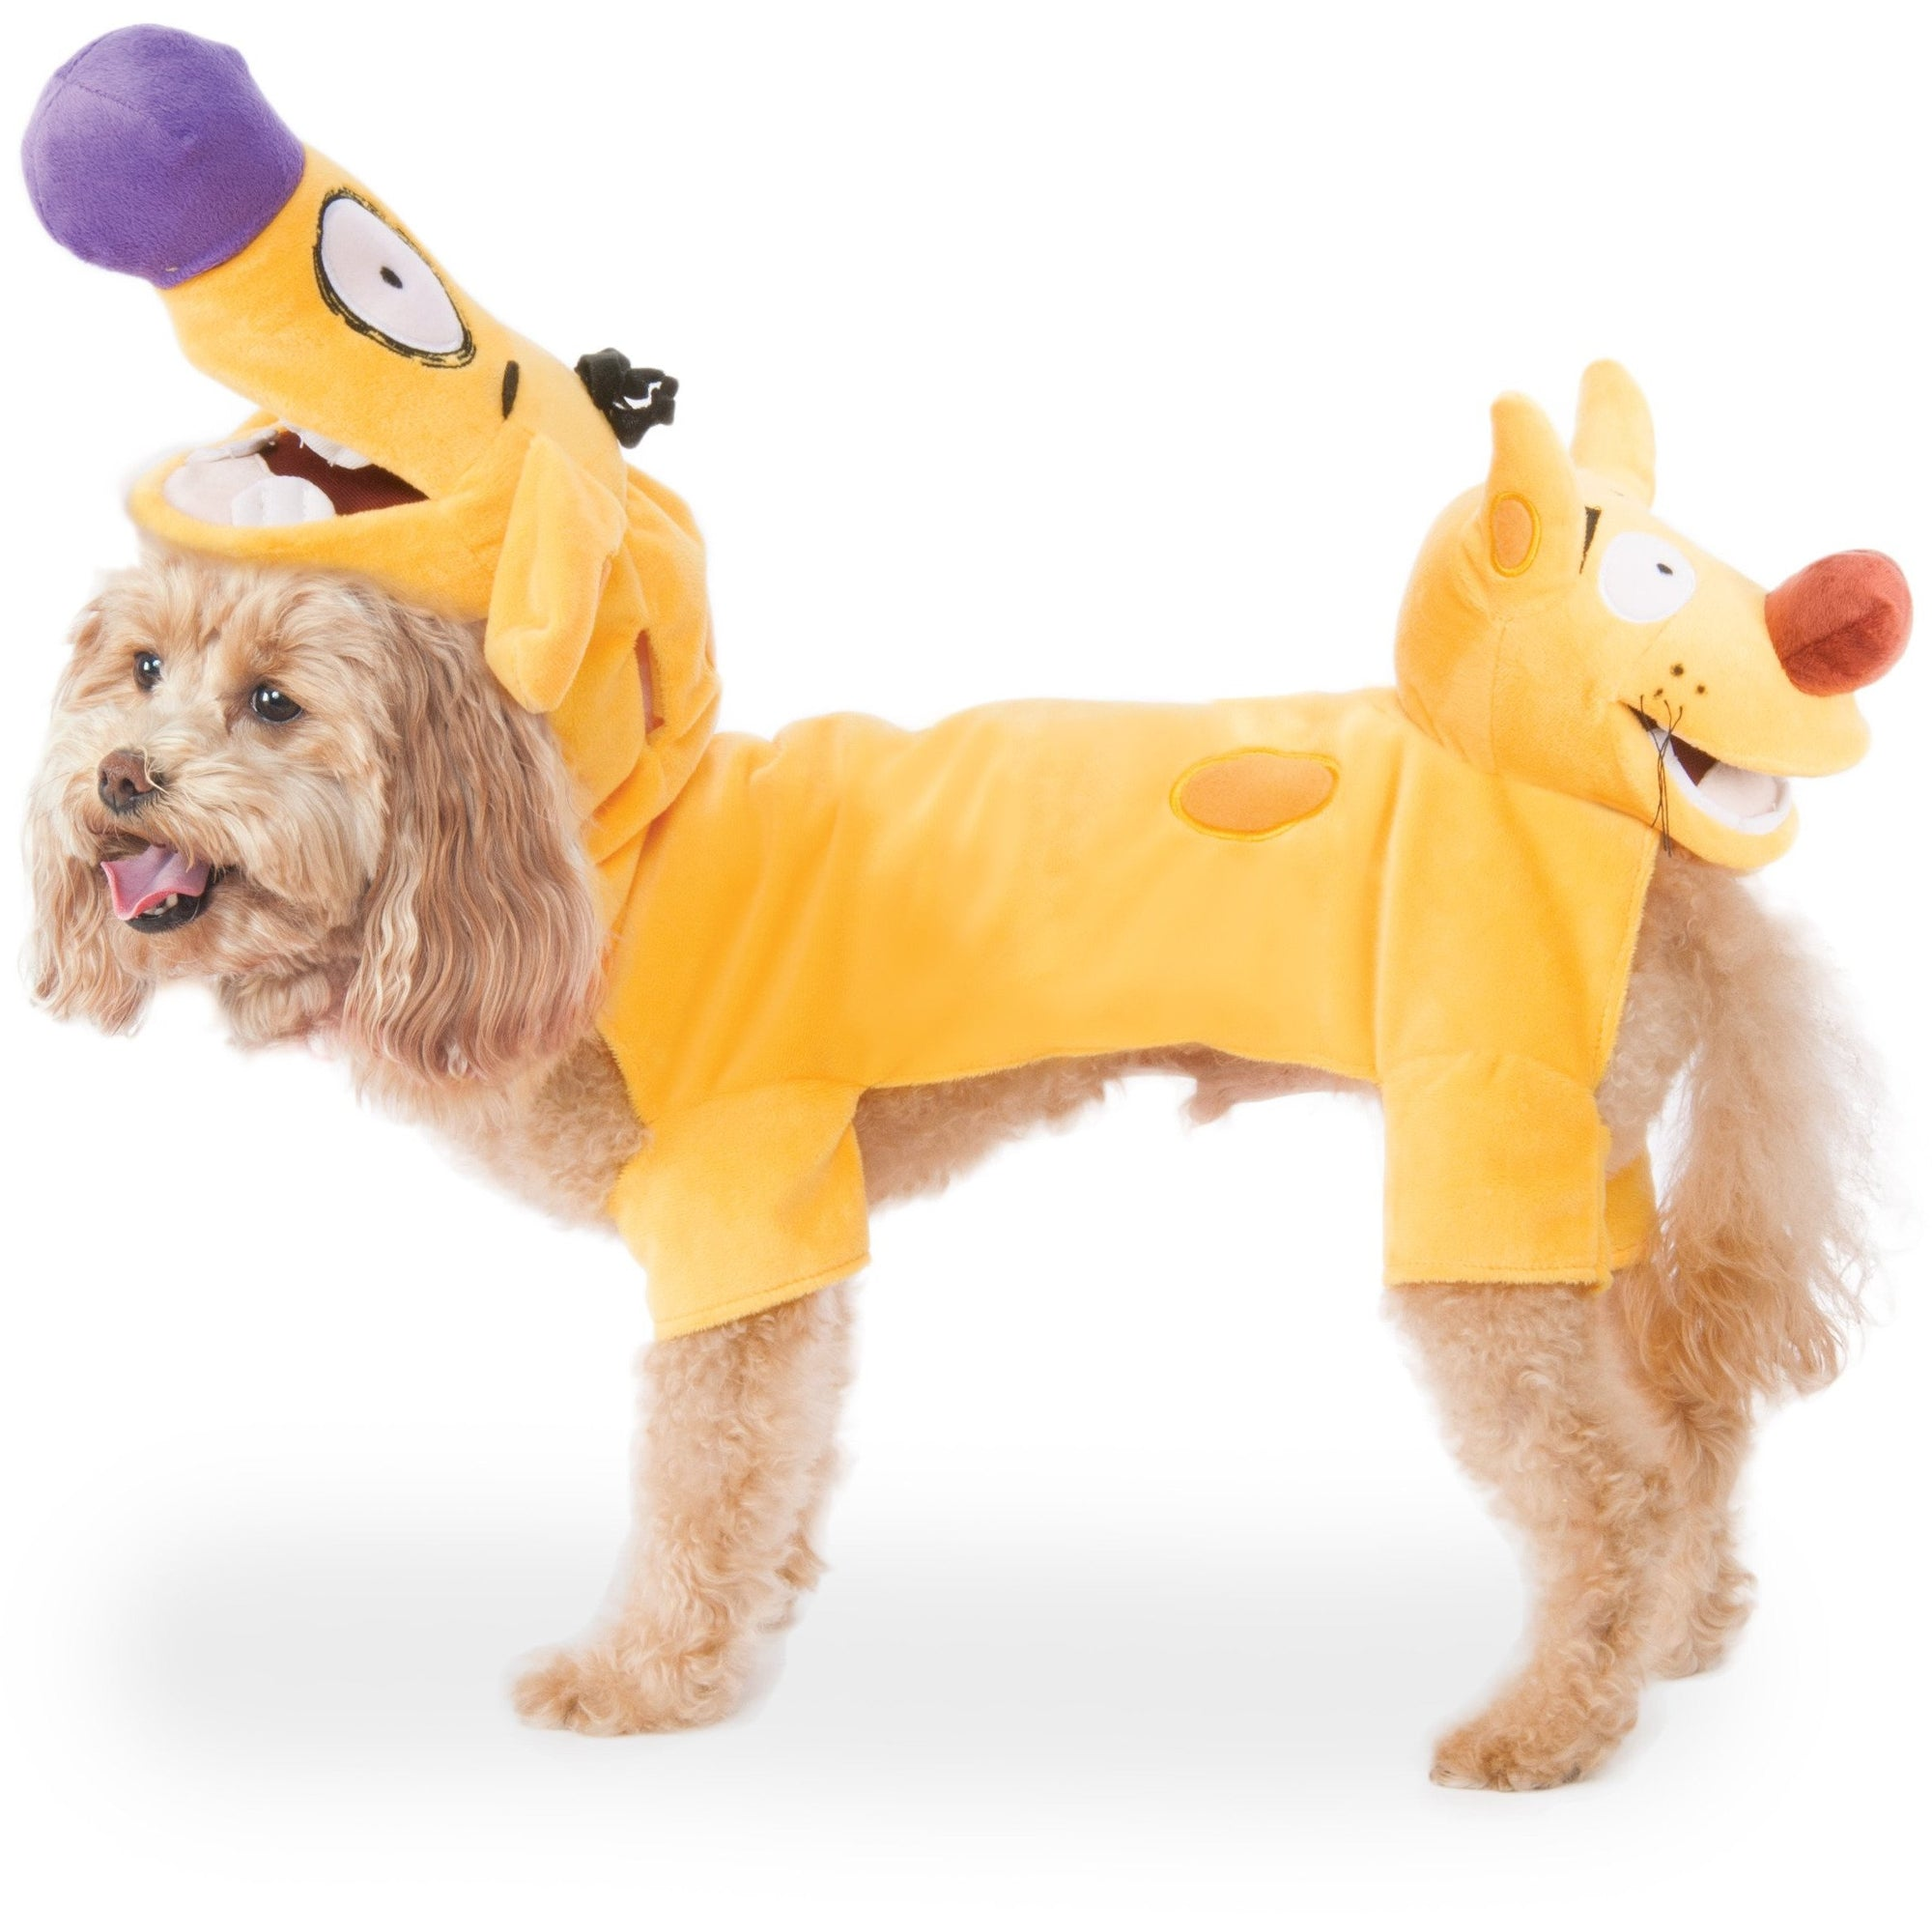 CatDog Nickelodeon Pet Costume